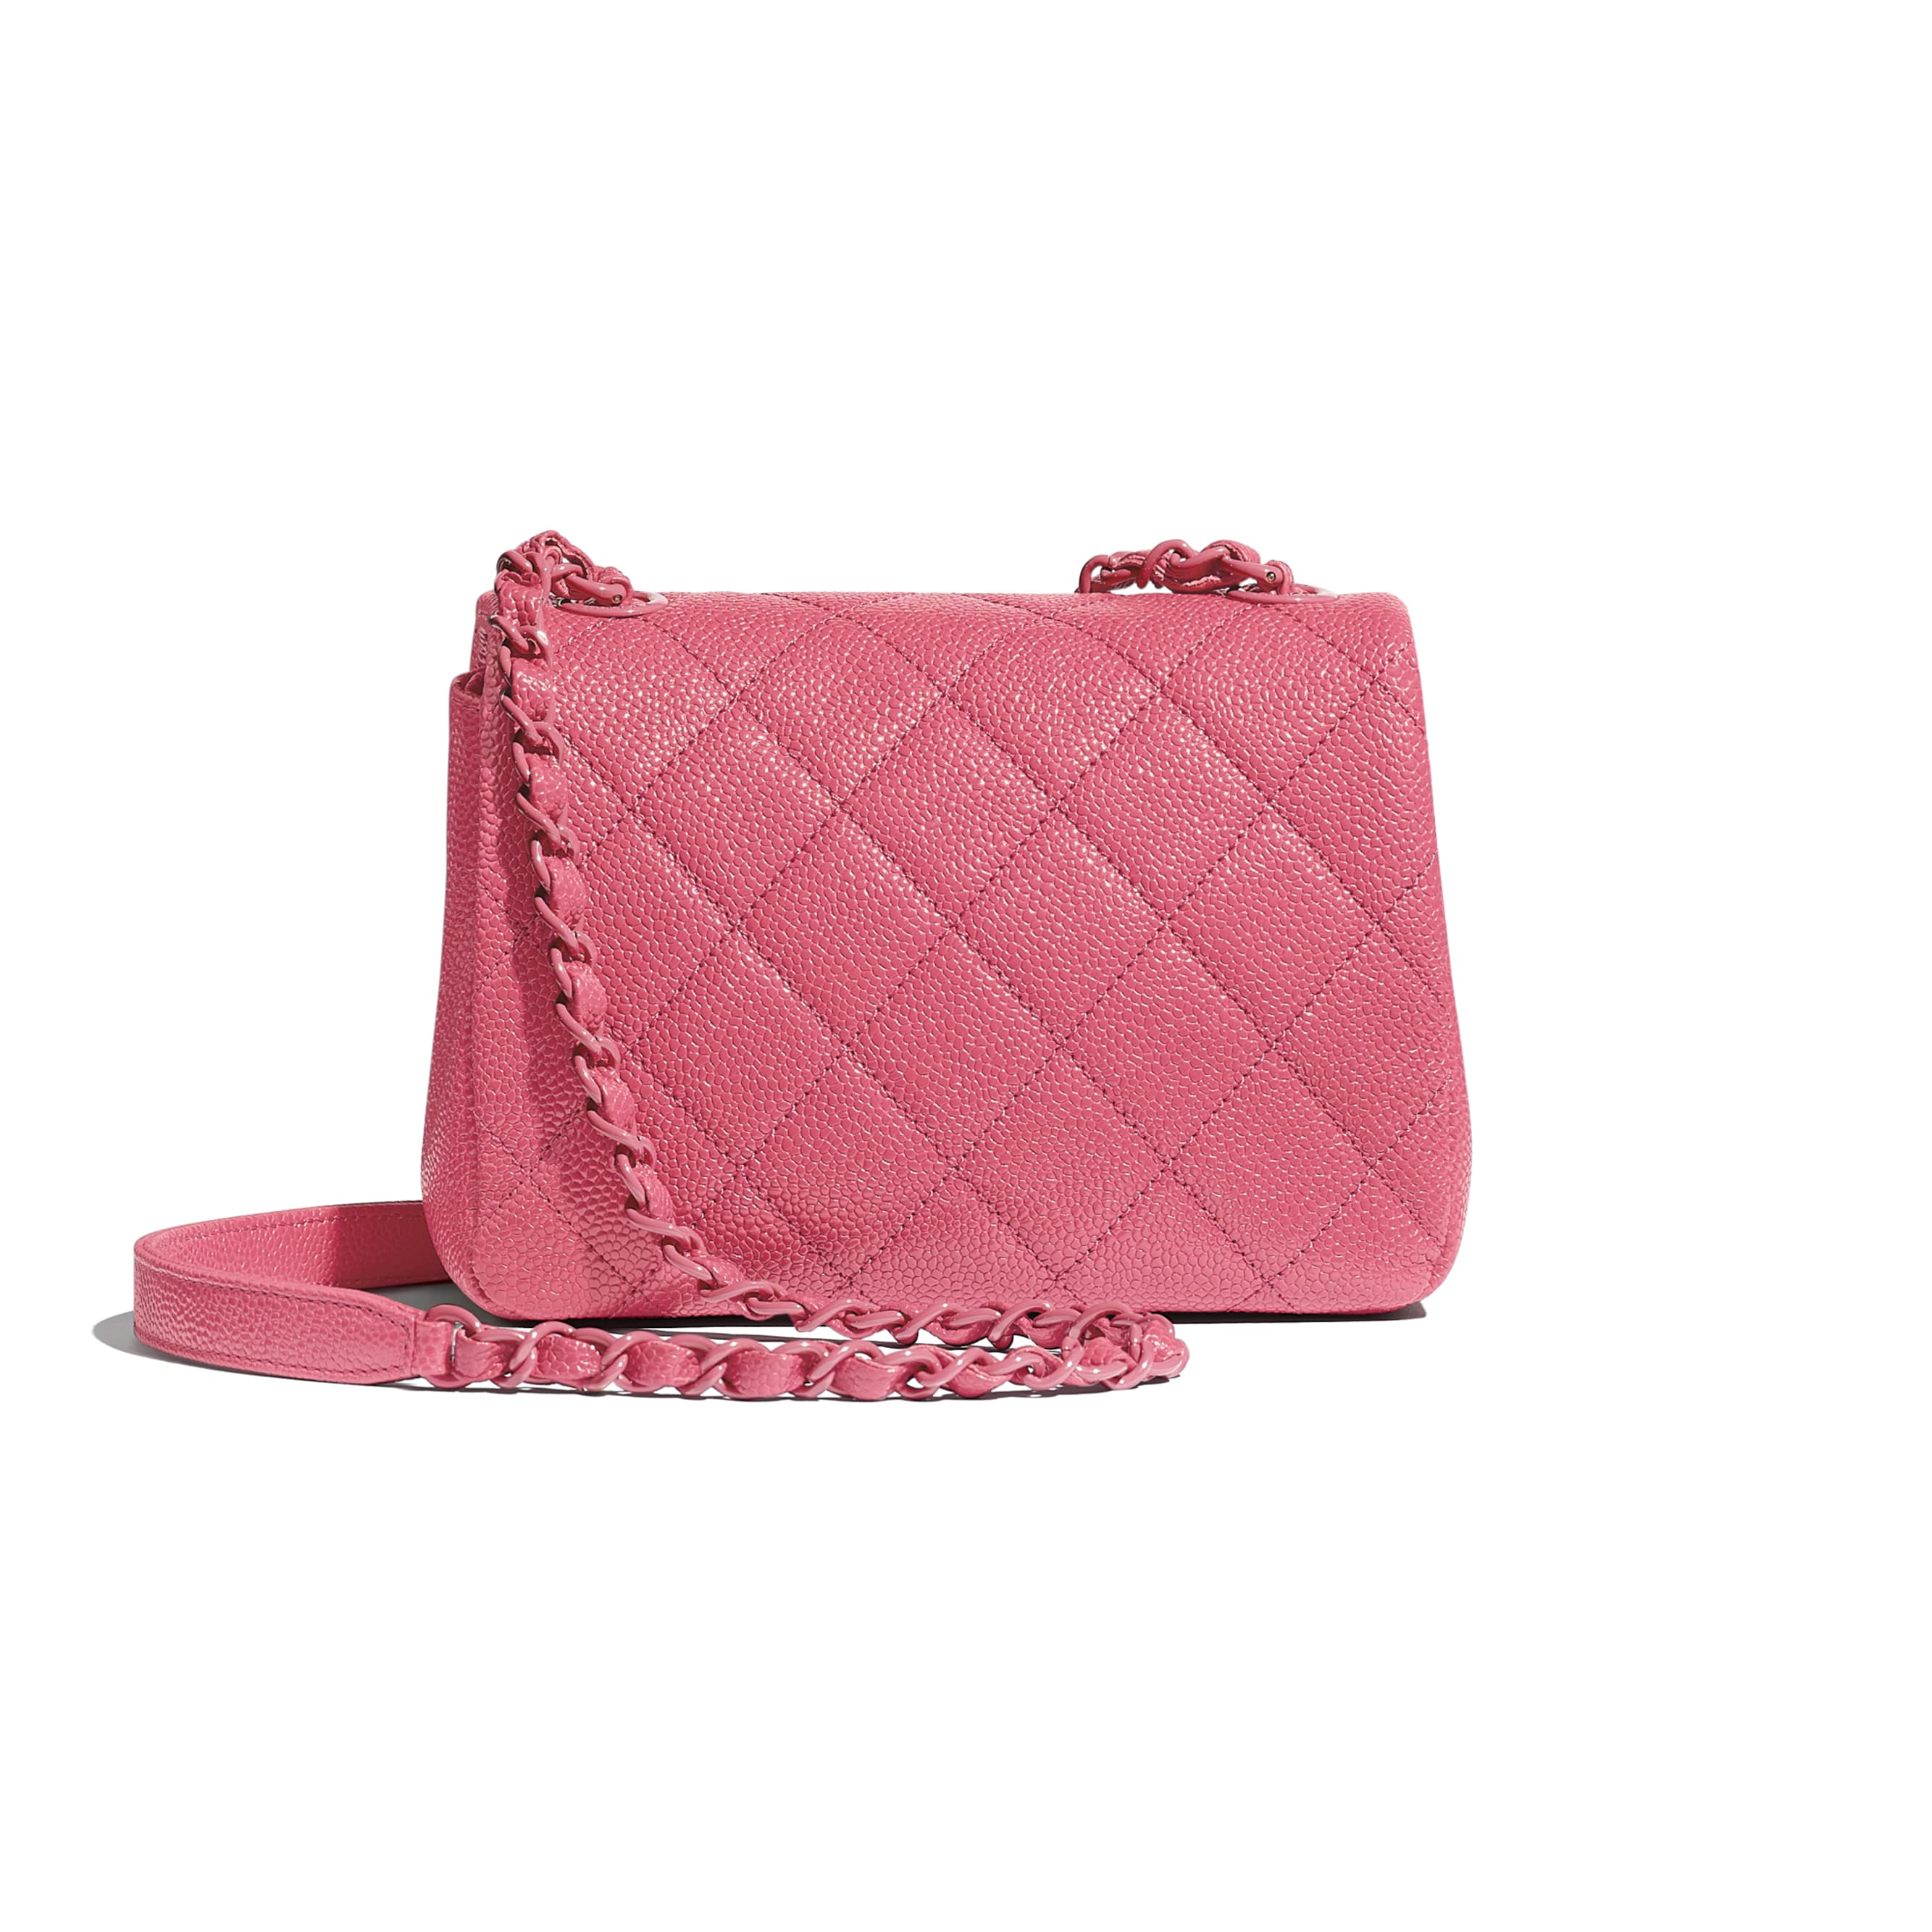 Flap Bag - Light Pink - Grained Calfskin & Lacquered Metal - CHANEL - Alternative view - see standard sized version